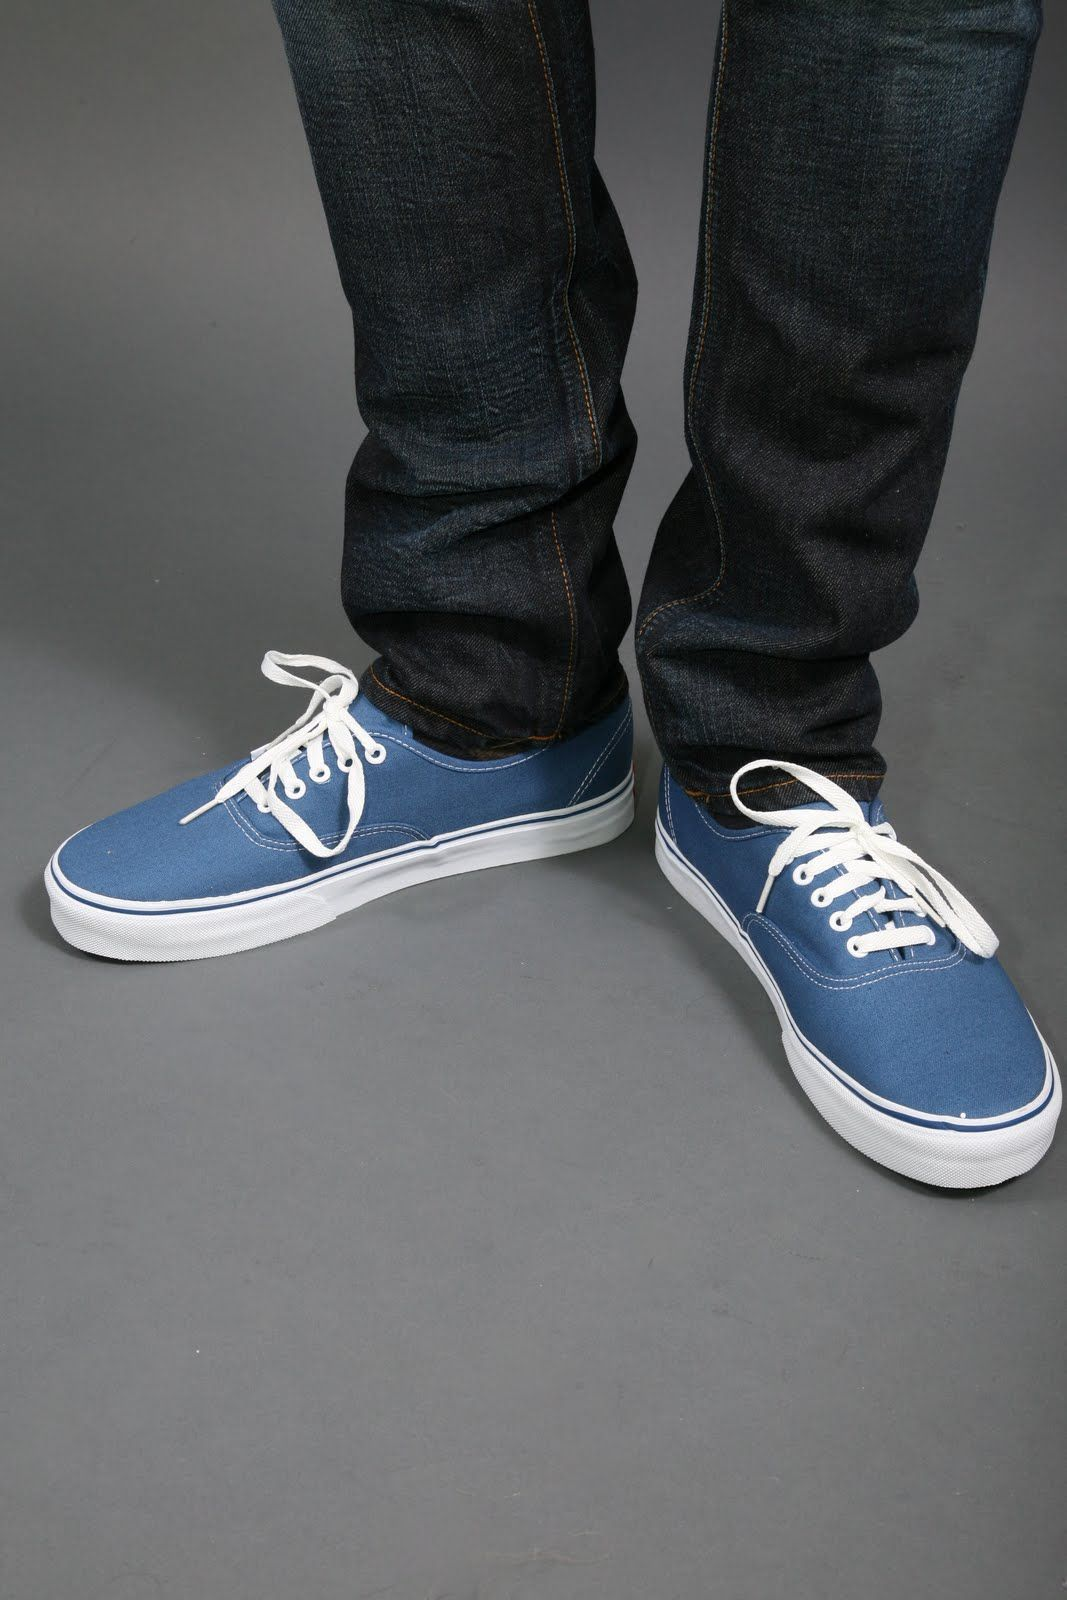 Vans Authentic Navy Dogtown Syle Sneakers Vans Authentic Navy Vans Vans Authentic